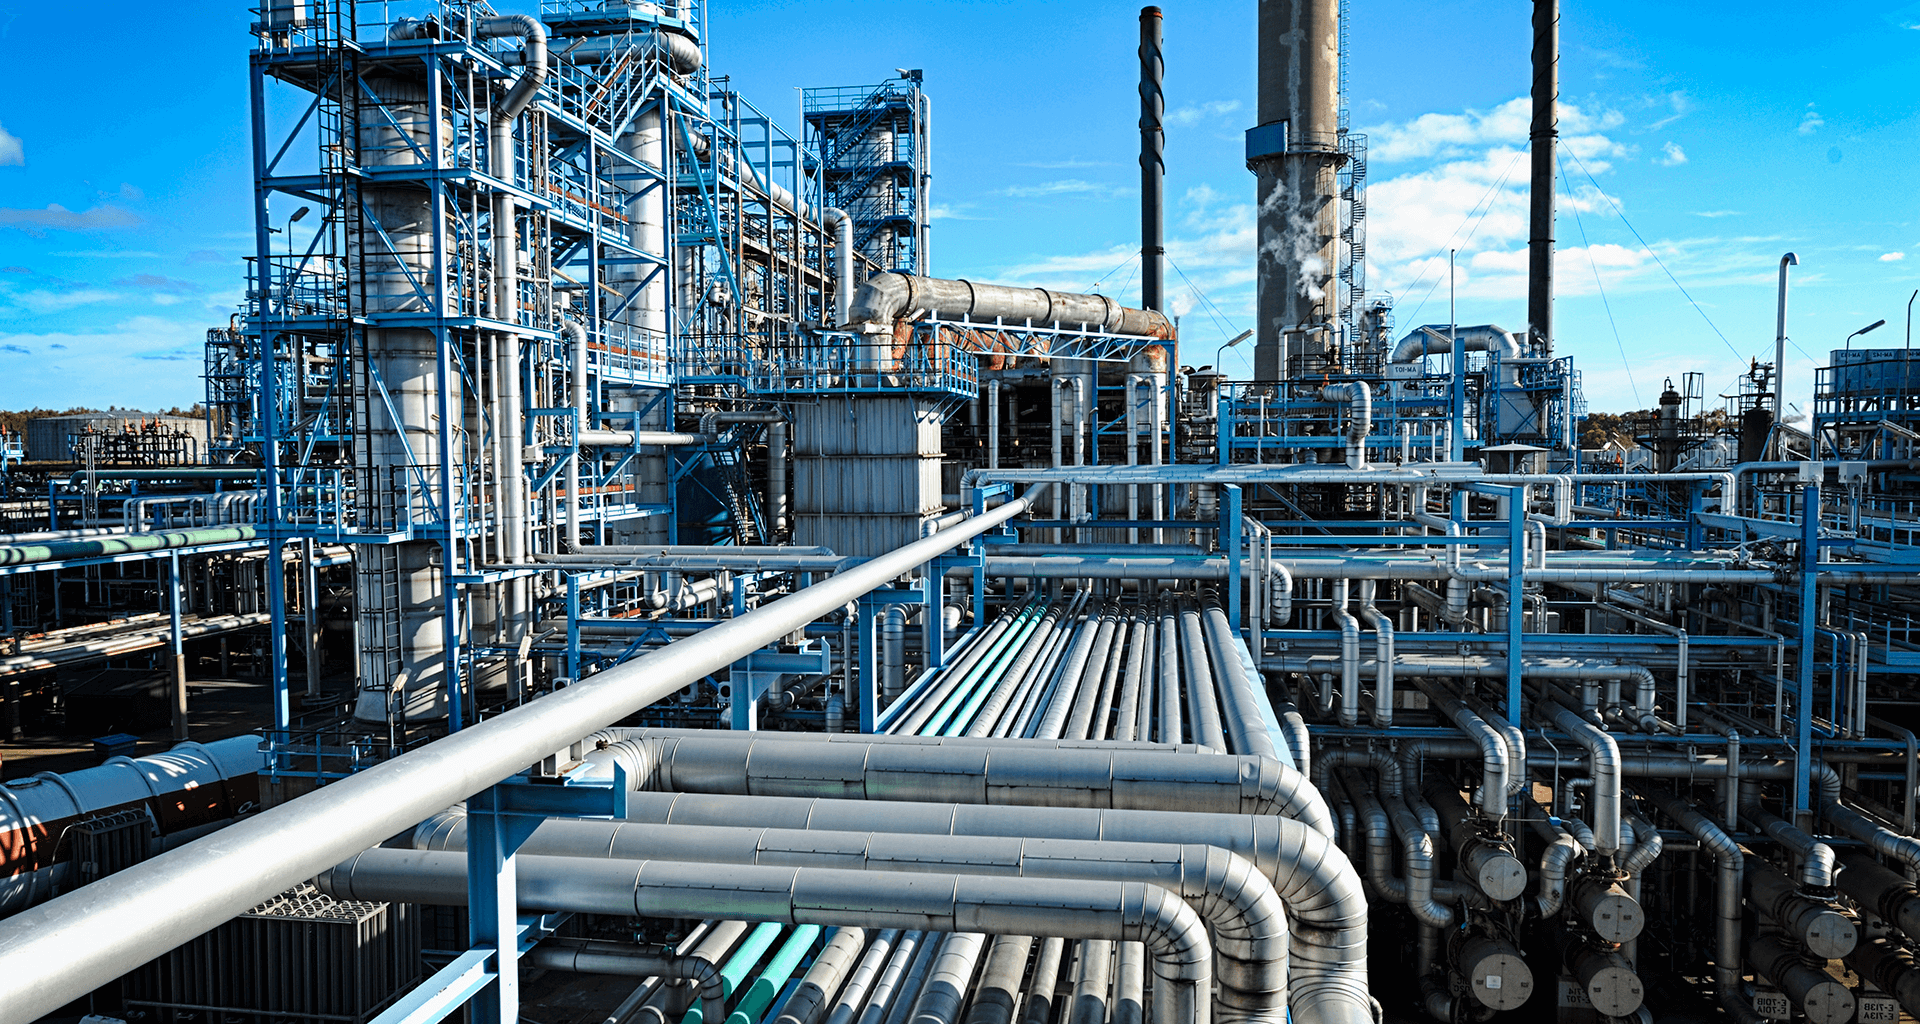 Inspecting Pipes for CUI: How Choosing the Right Tech Affects the Bottom Line | Eddyfi